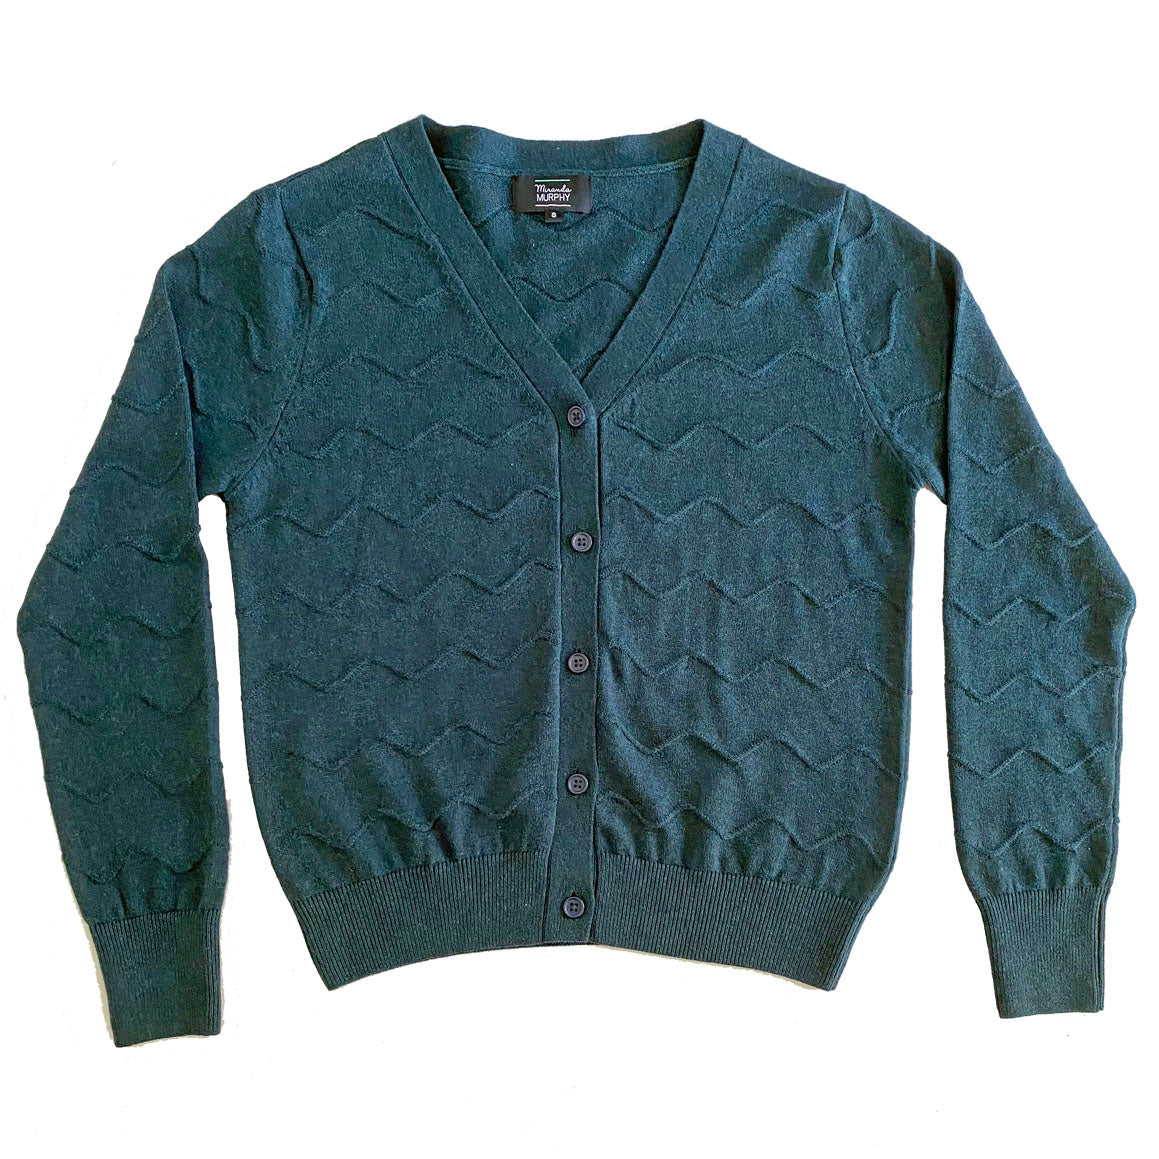 Squiggle Cardigan - Atlantic Green